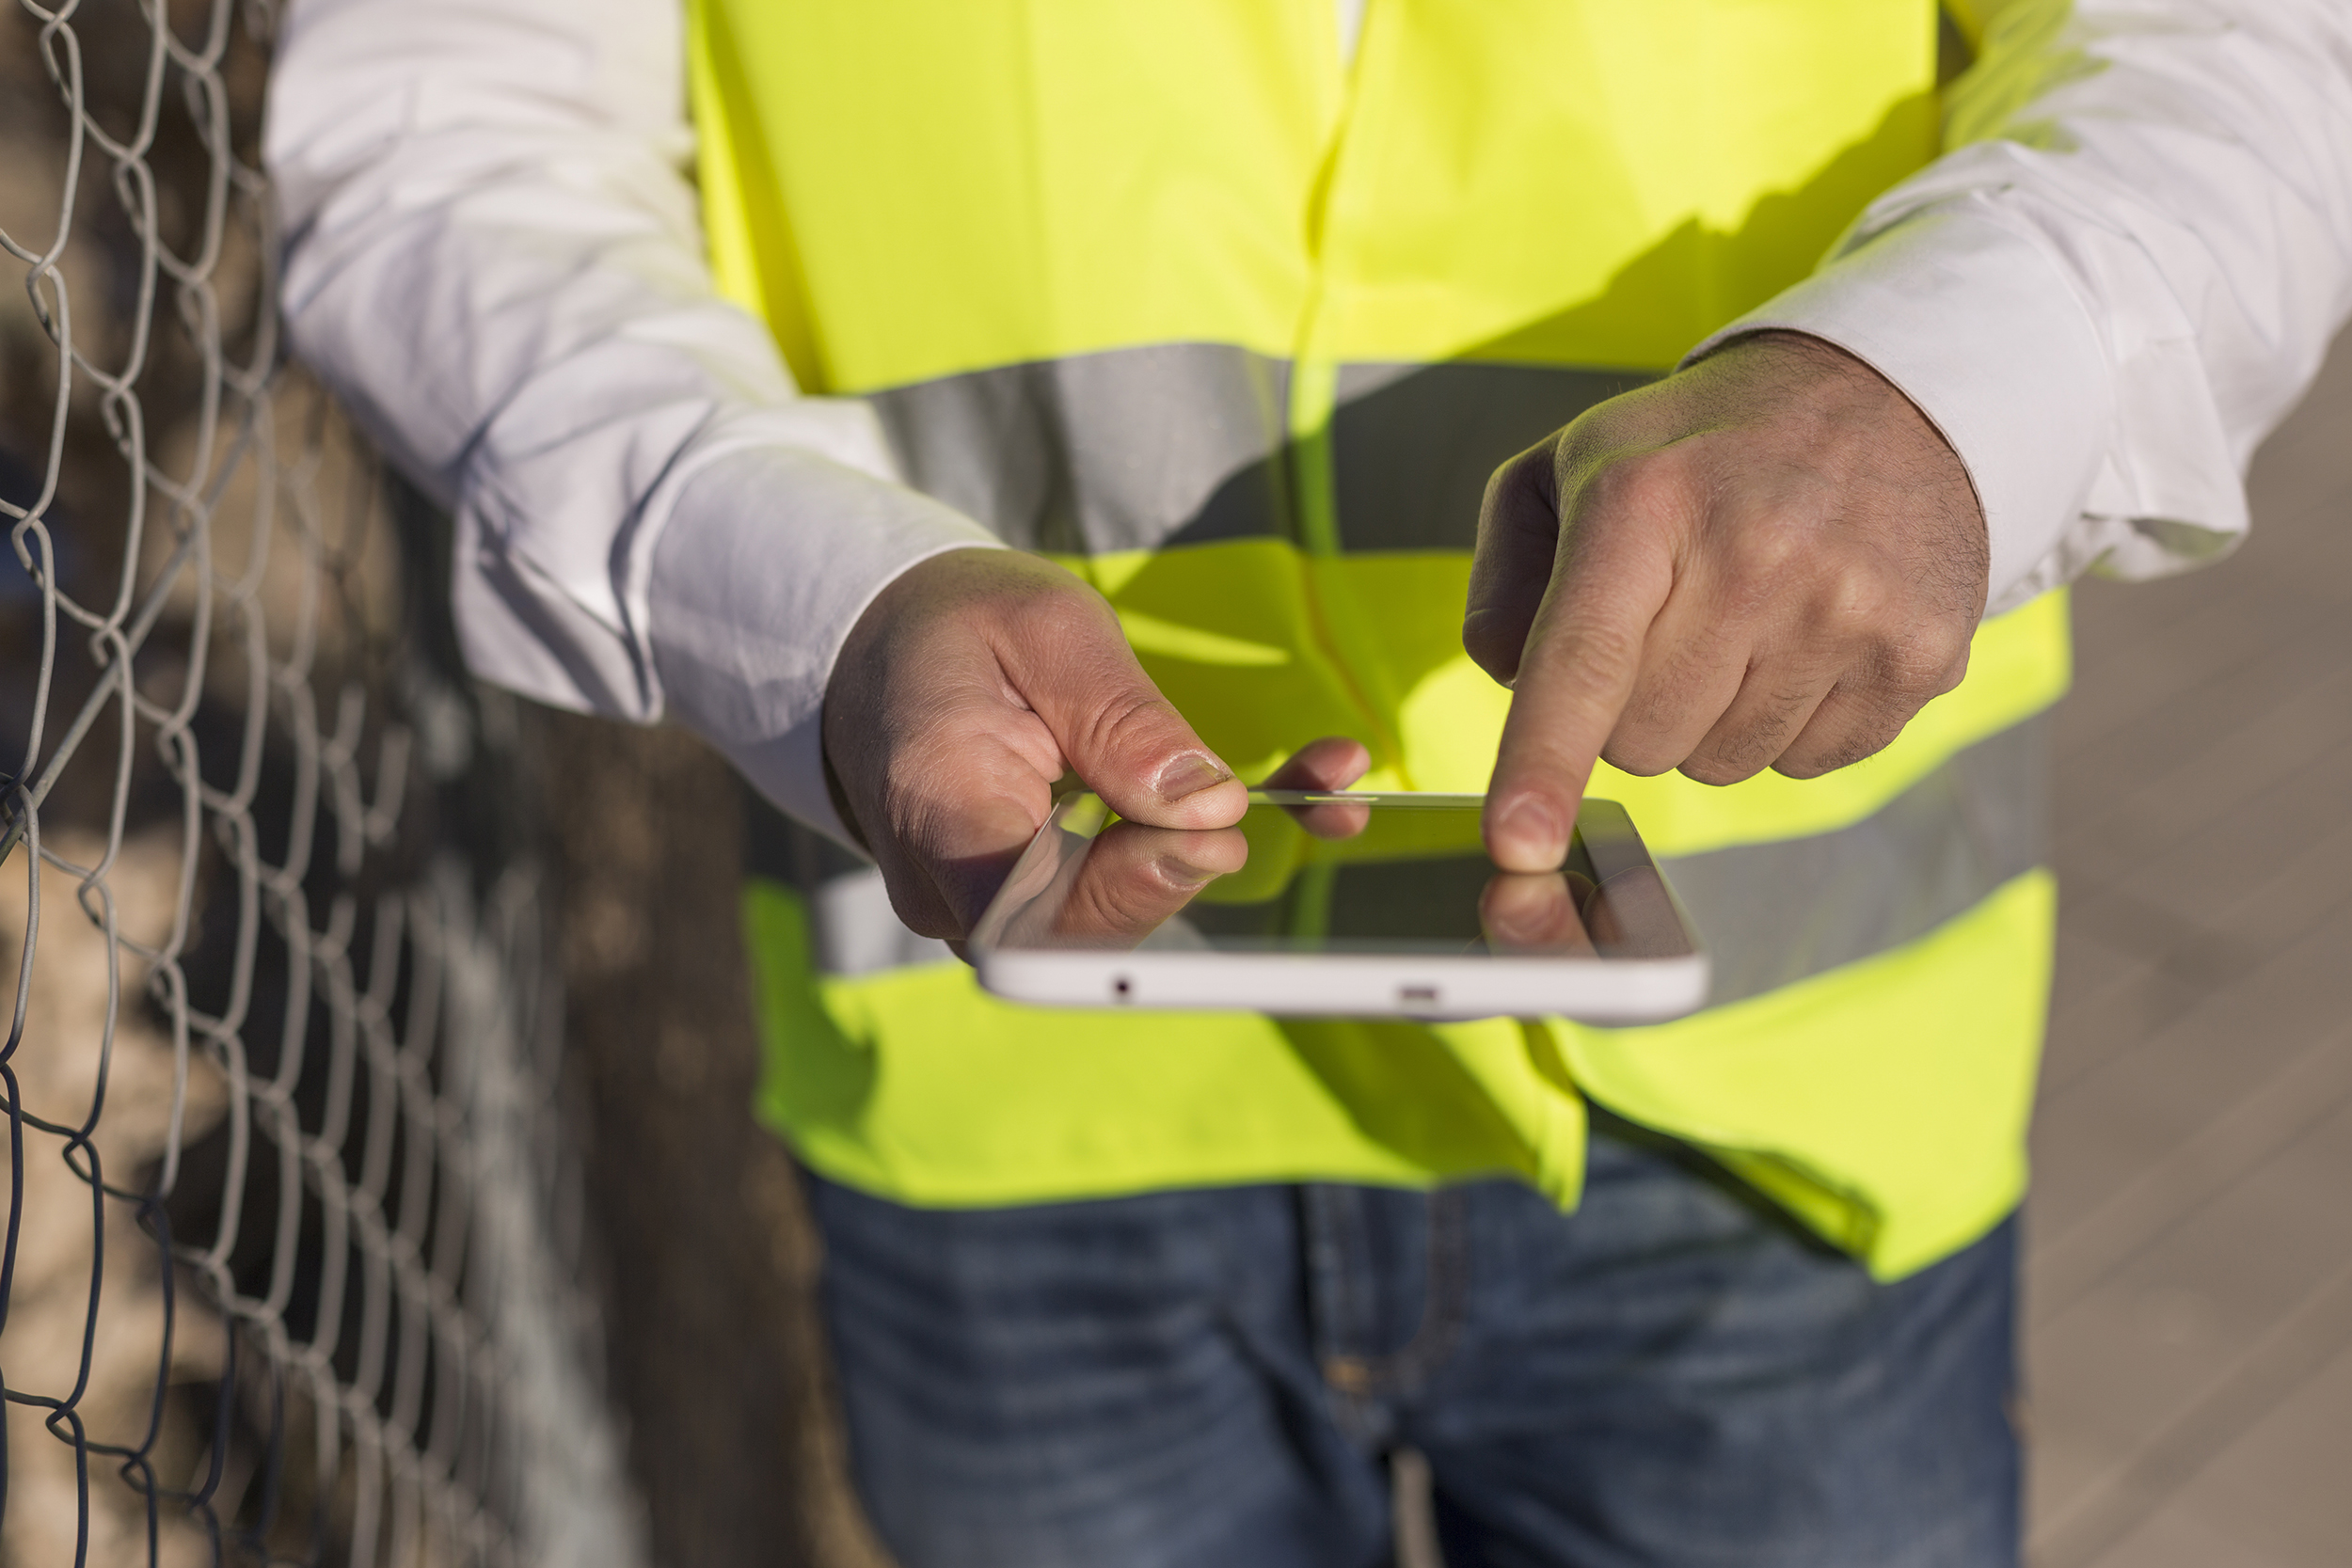 Field Engineer using mobile technology to